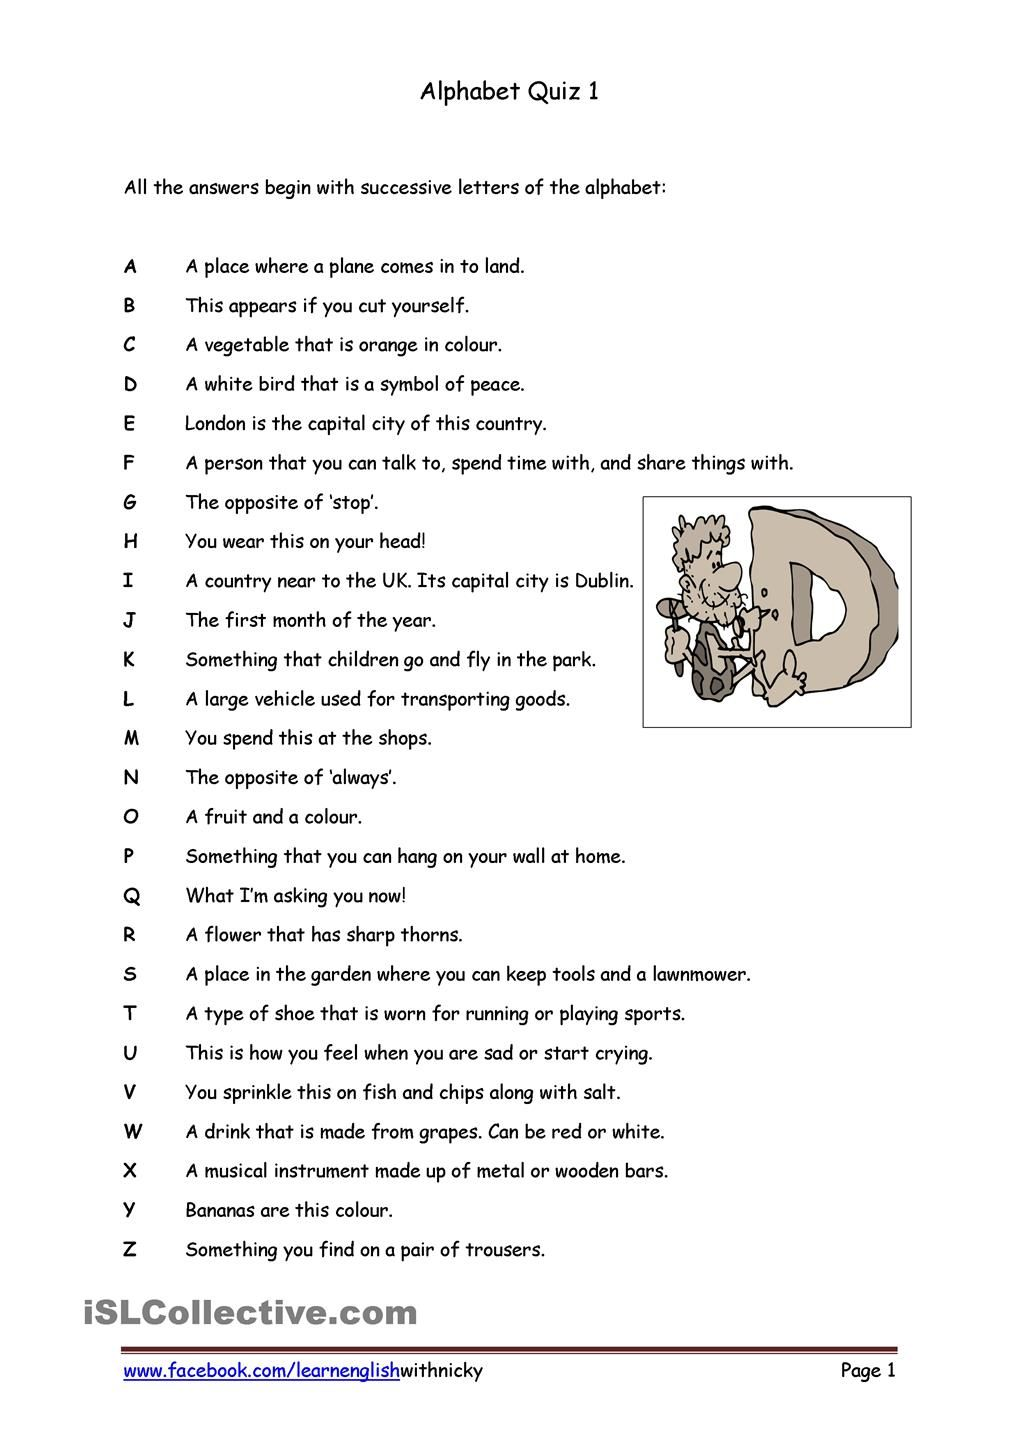 alphabet quiz 1 a work games pinterest worksheets and activities. Black Bedroom Furniture Sets. Home Design Ideas